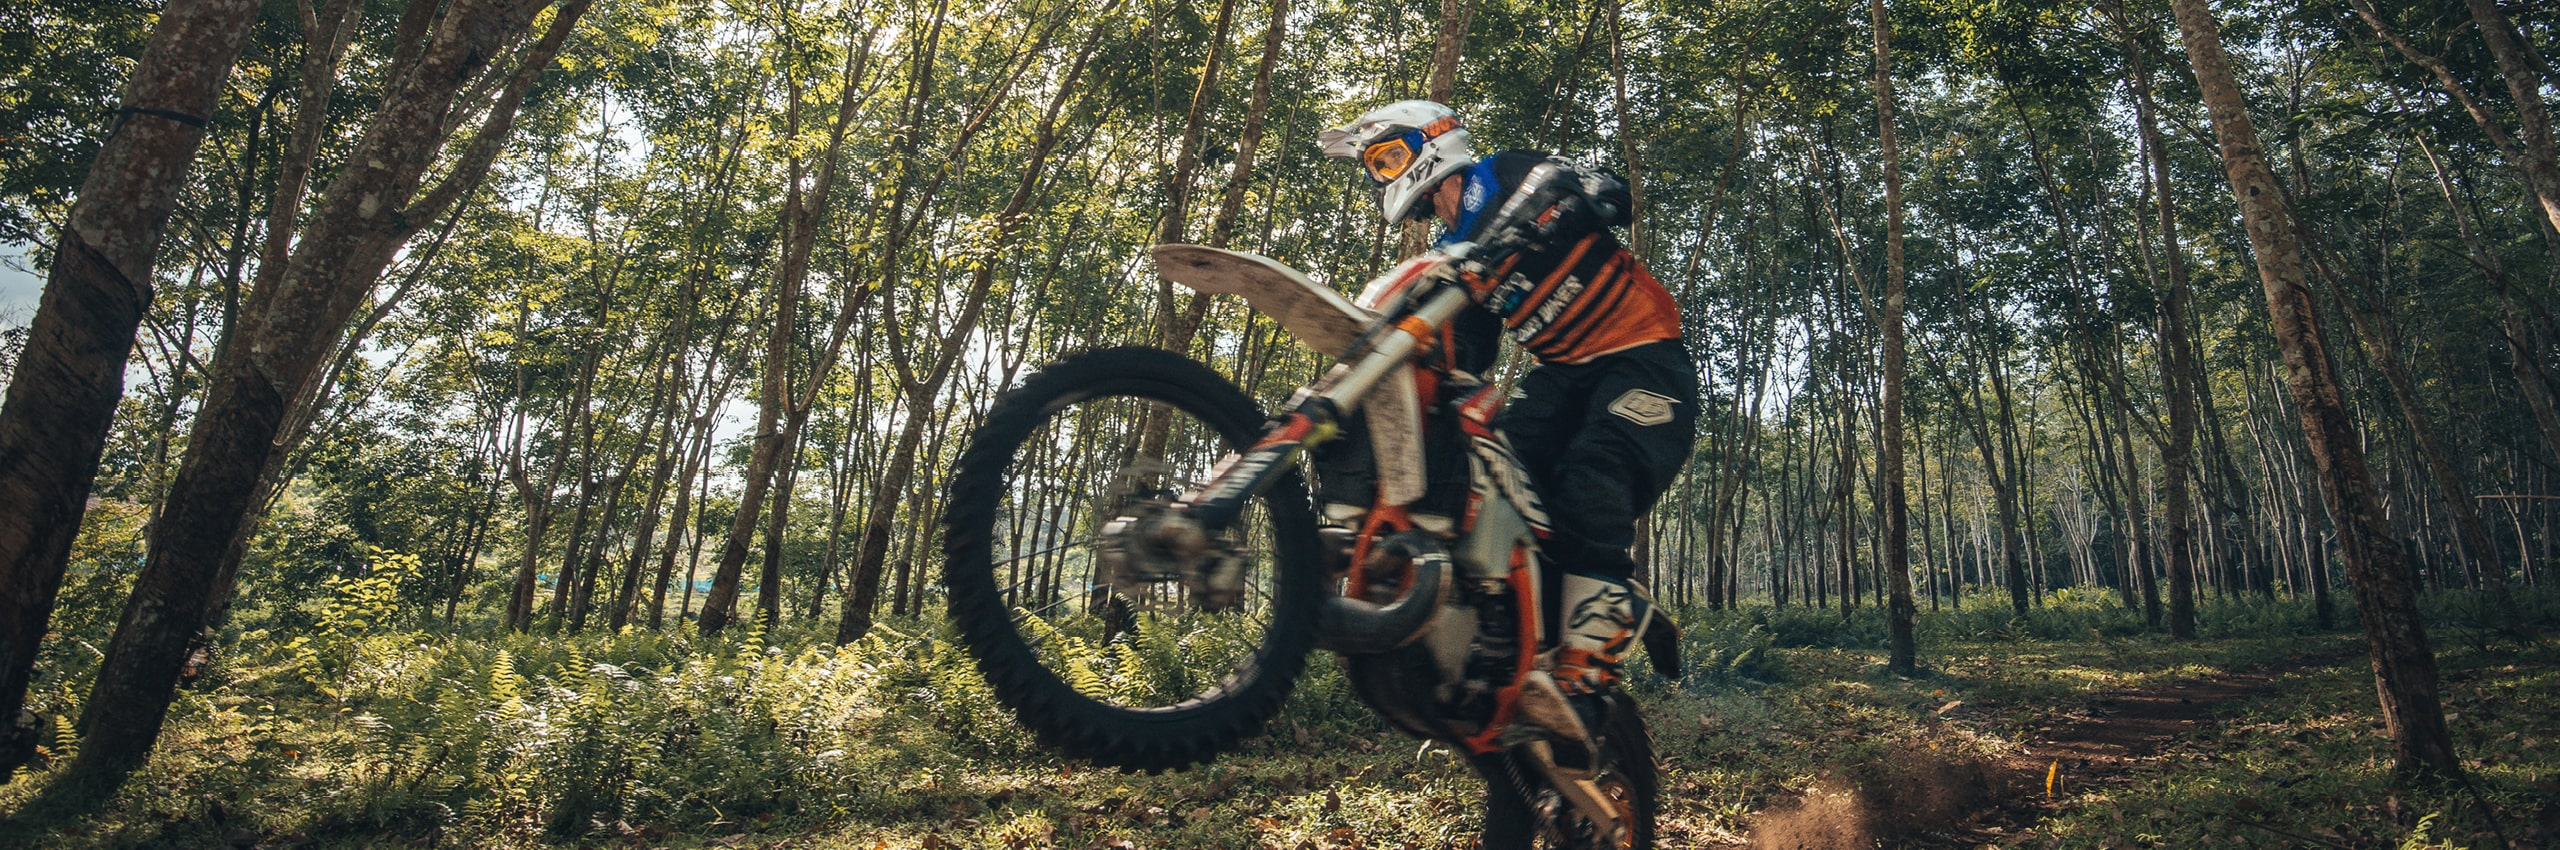 Bali_Dirt_Bikes_Rubber_Forest_Slider3